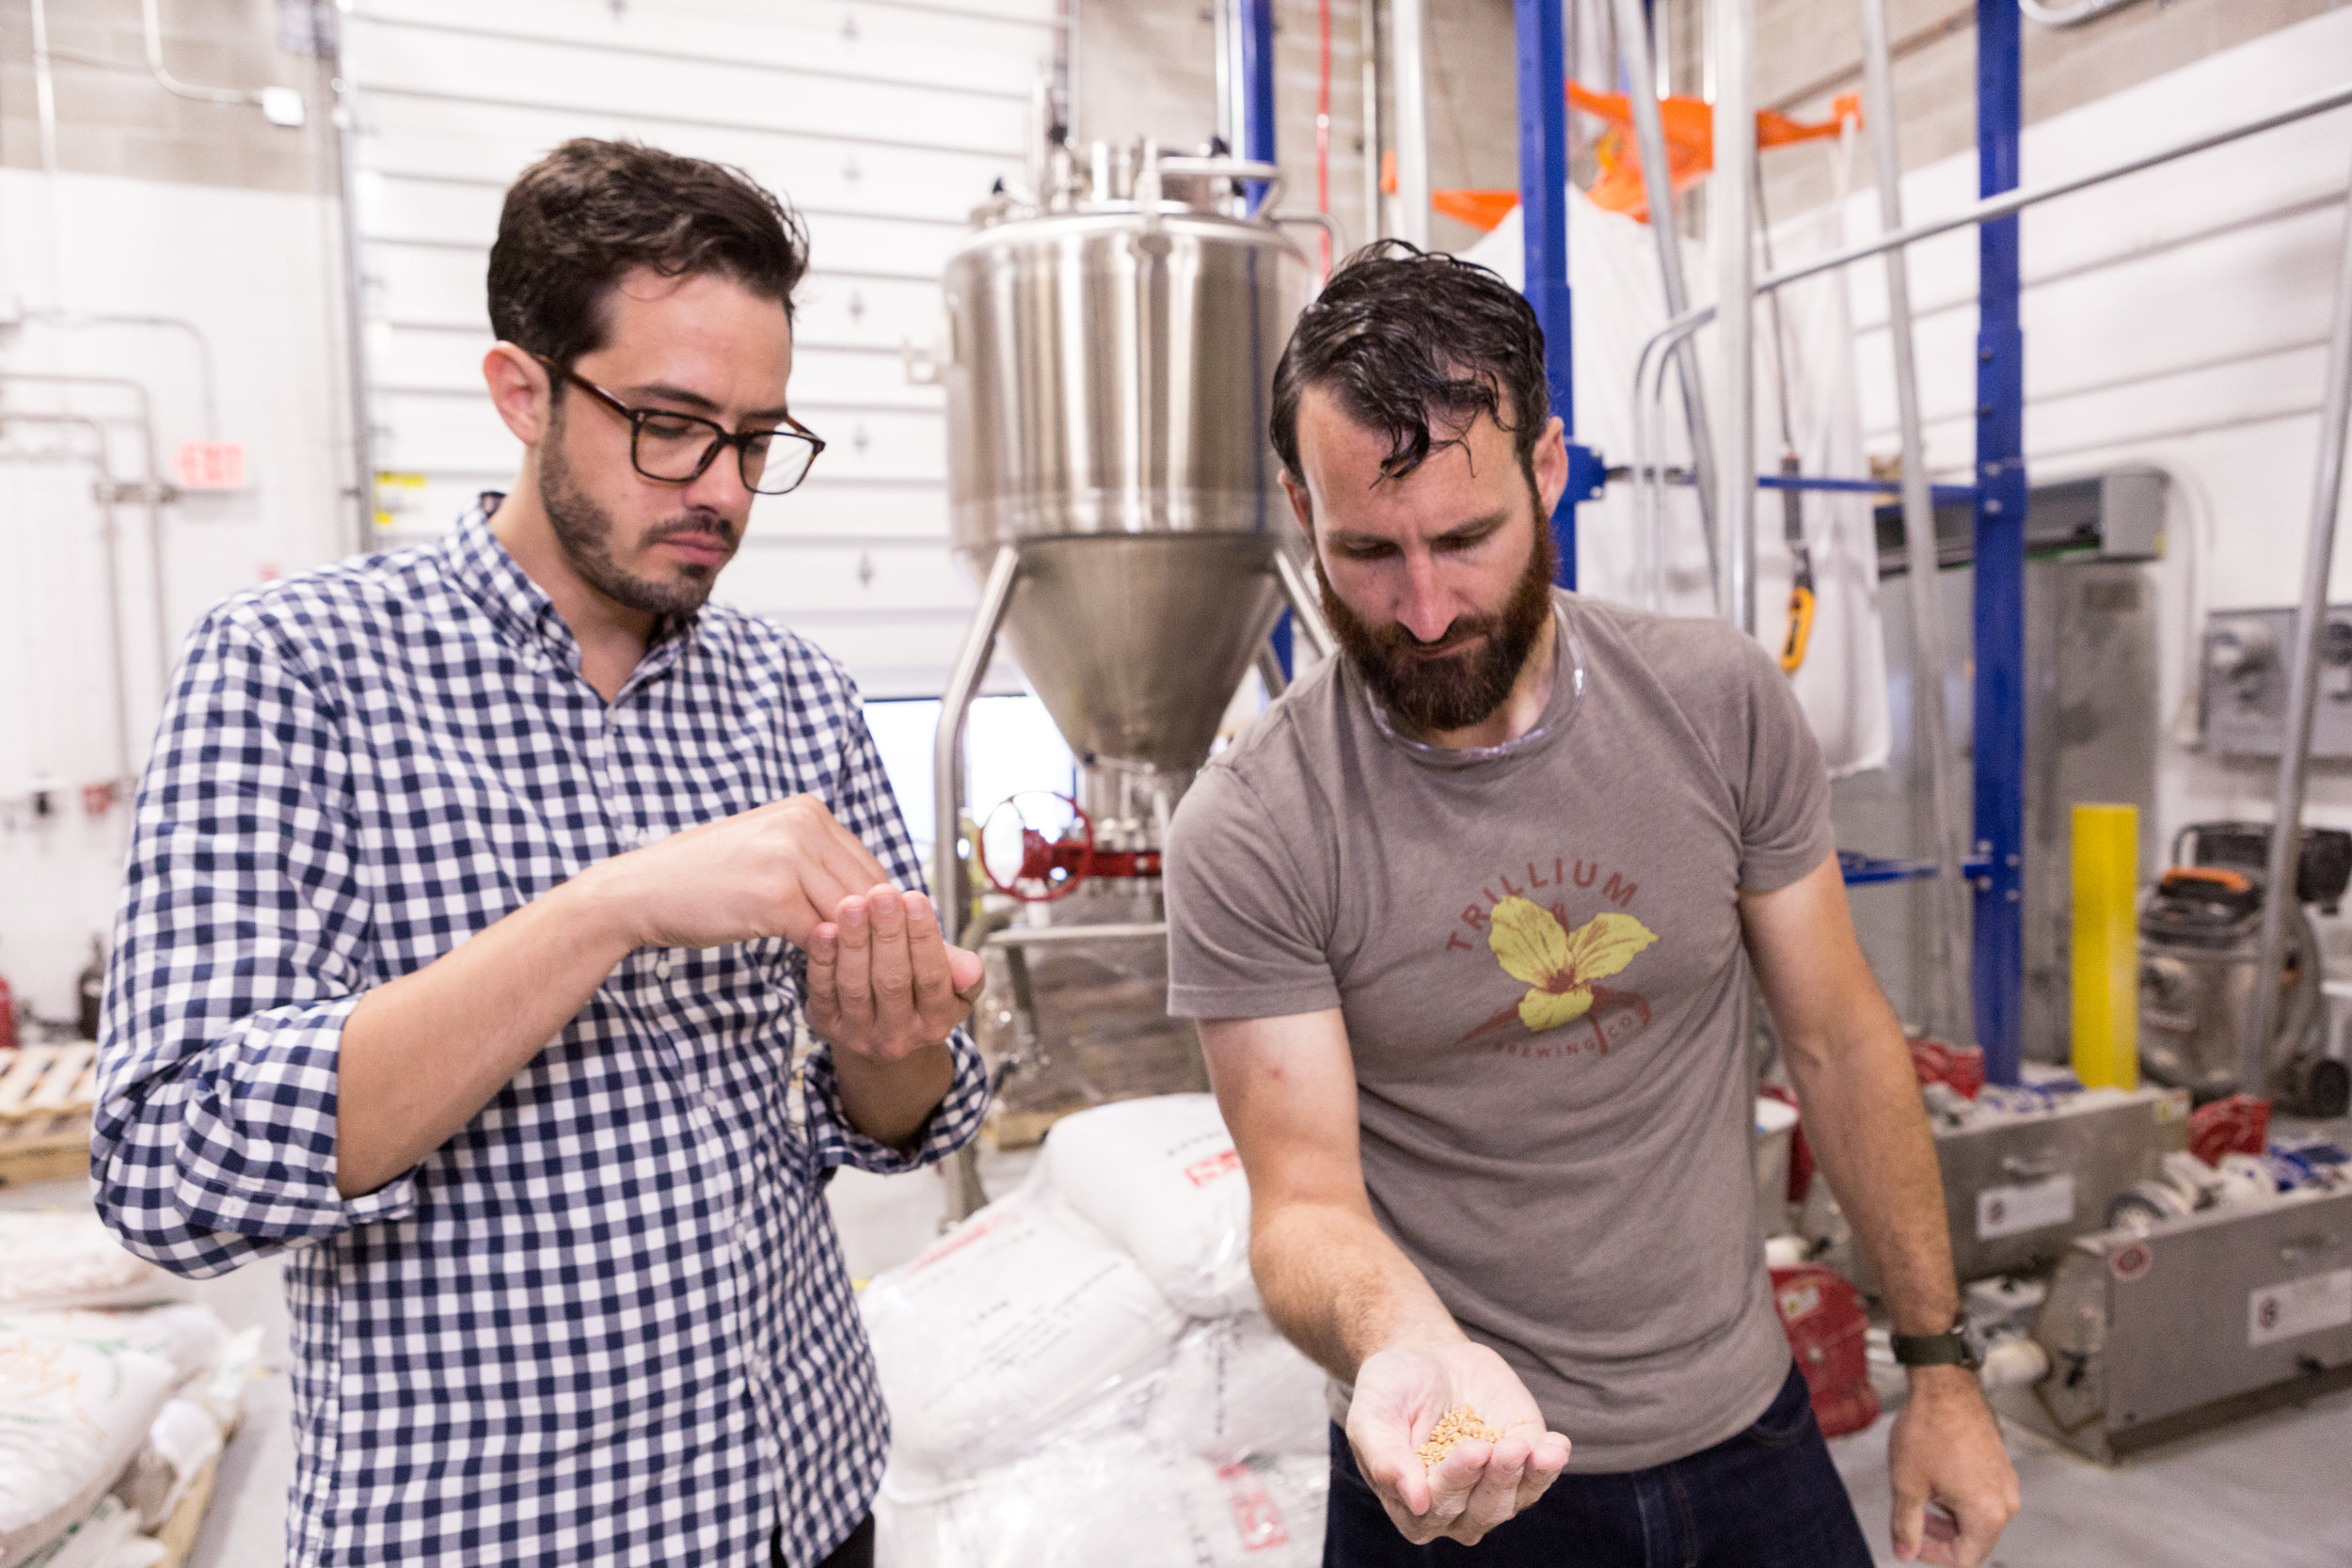 The Cook's Illustrated team visits Trillium on brew day